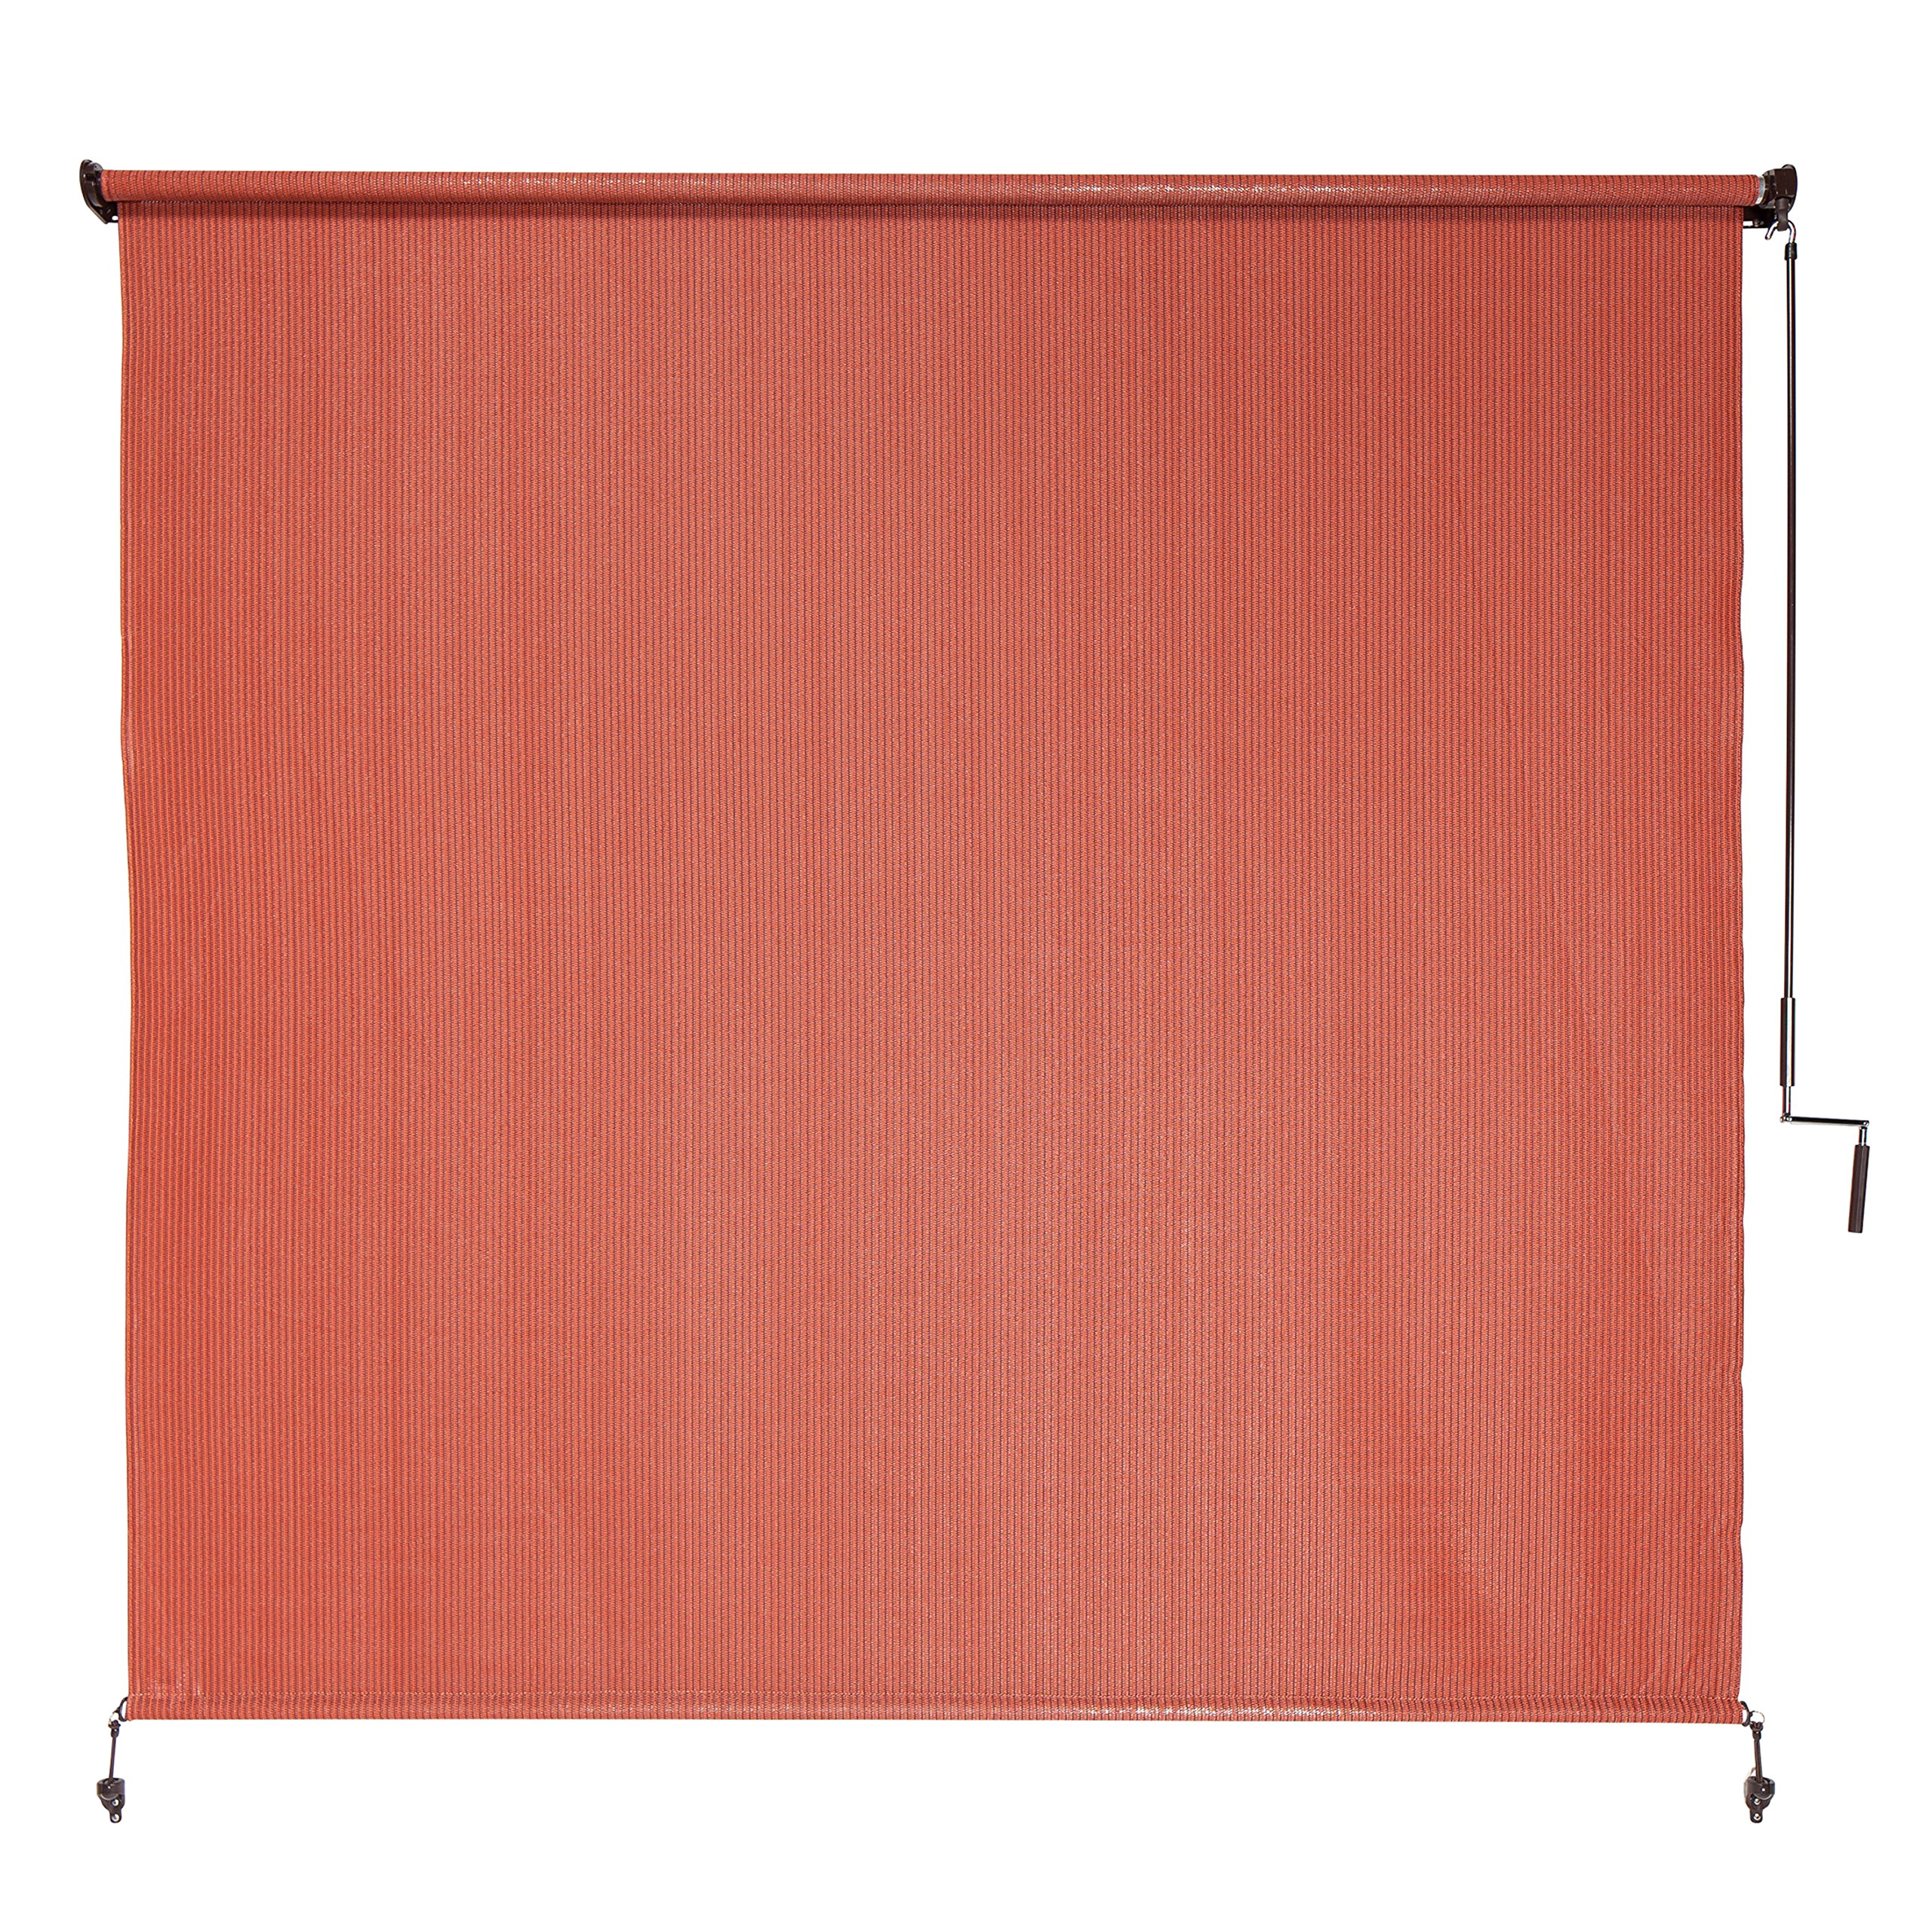 Coolaroo Exterior Roller Shade, Cordless Roller Shade with 90% UV Protection, No Valance, (6' X 6'), Terracotta by Coolaroo